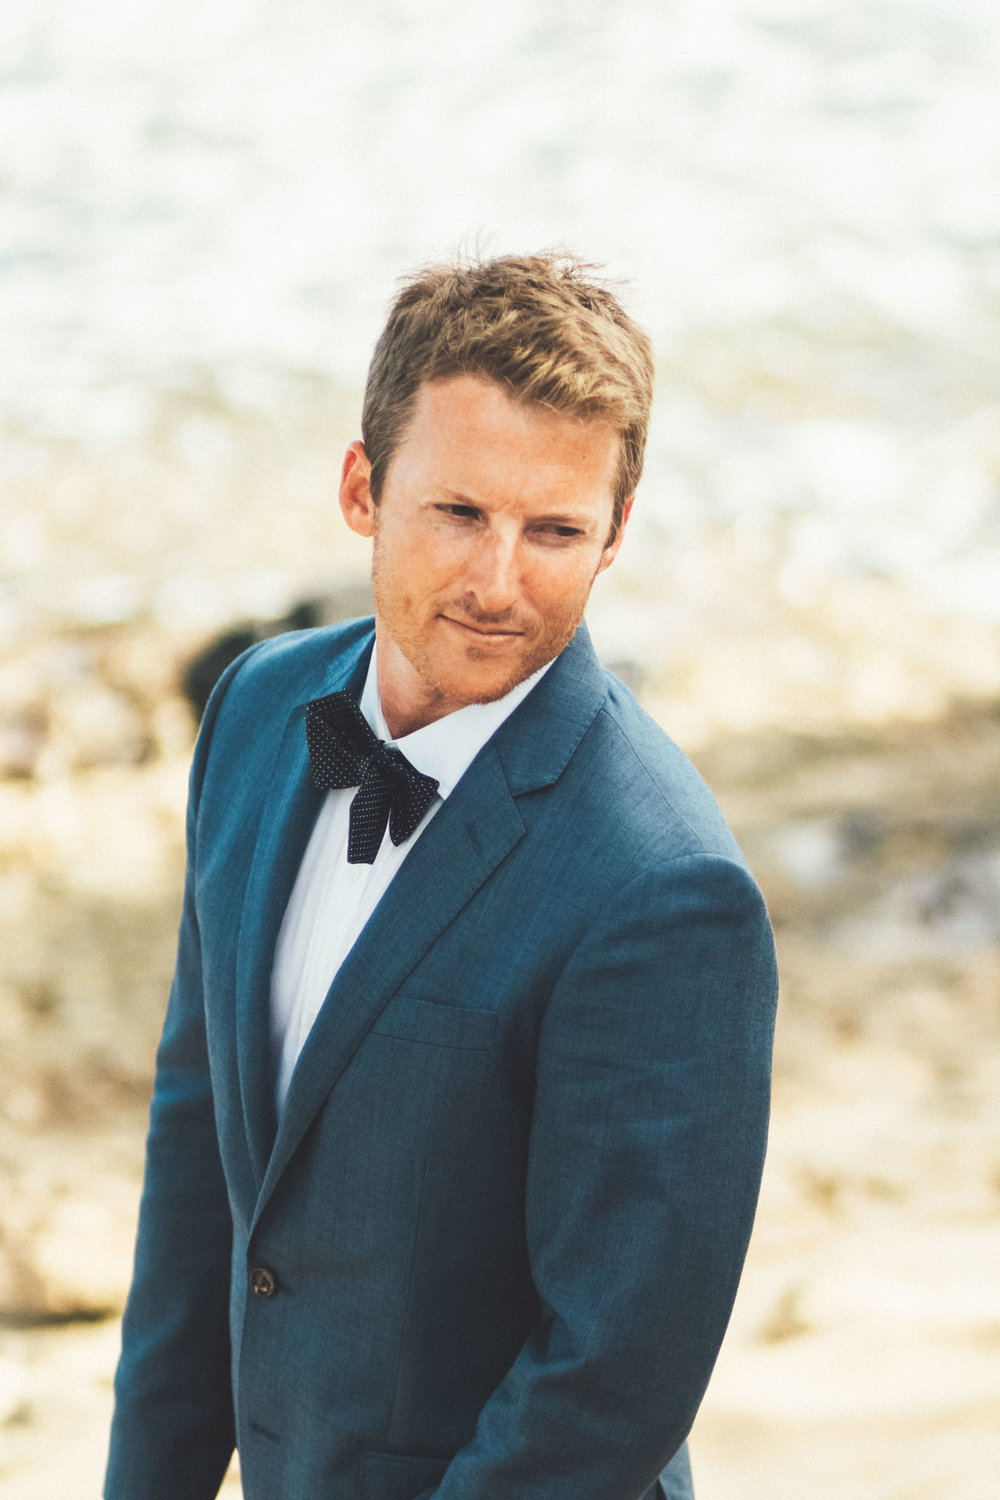 Kauai wedding groom with blue tux.jpg